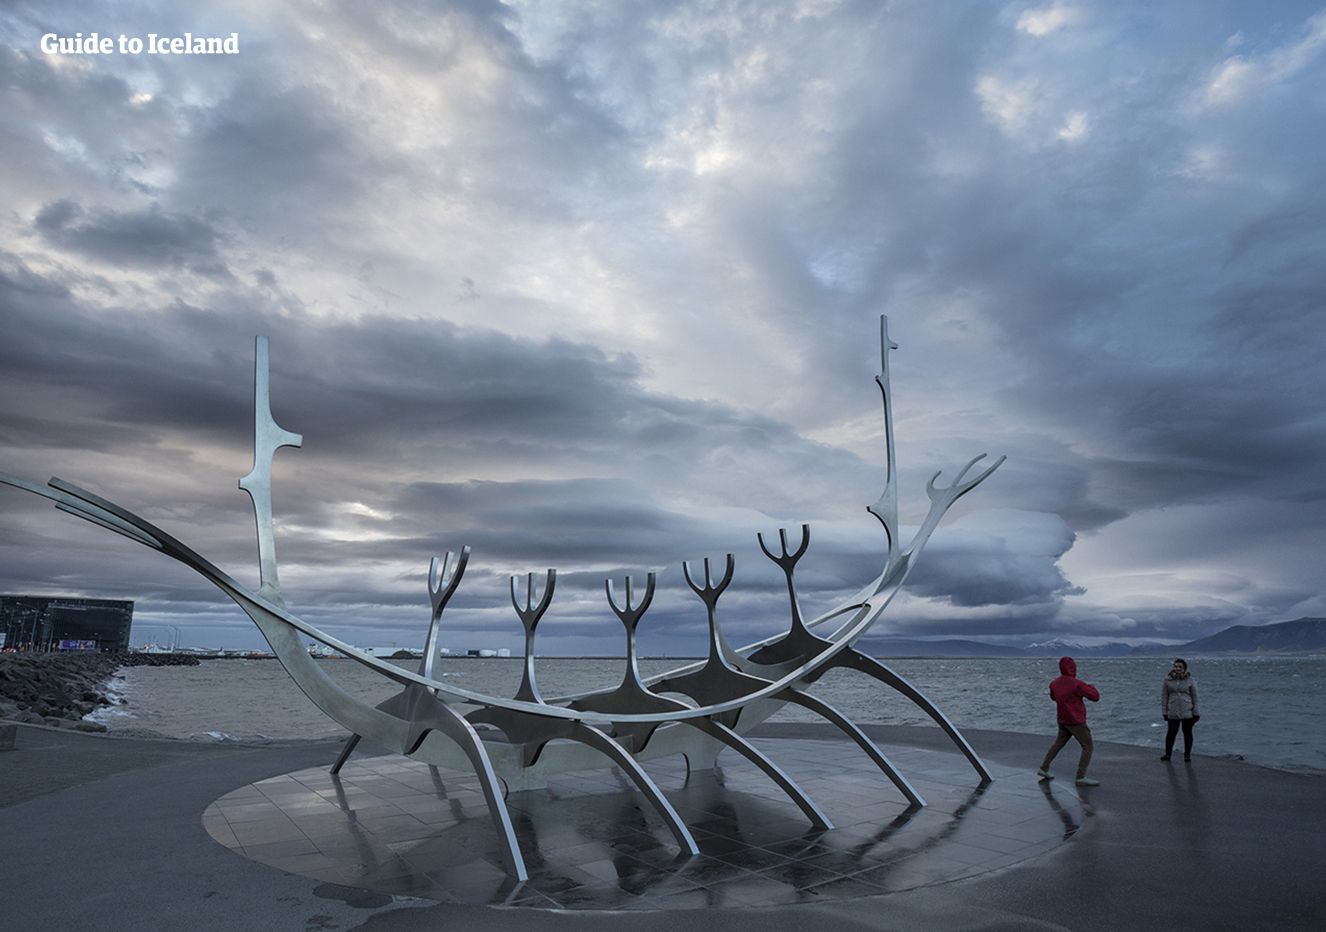 Off-the-beaten-path 8 Day Summer Vacation Package Tour of Iceland's South Coast, Westfjords & Highla - day 8